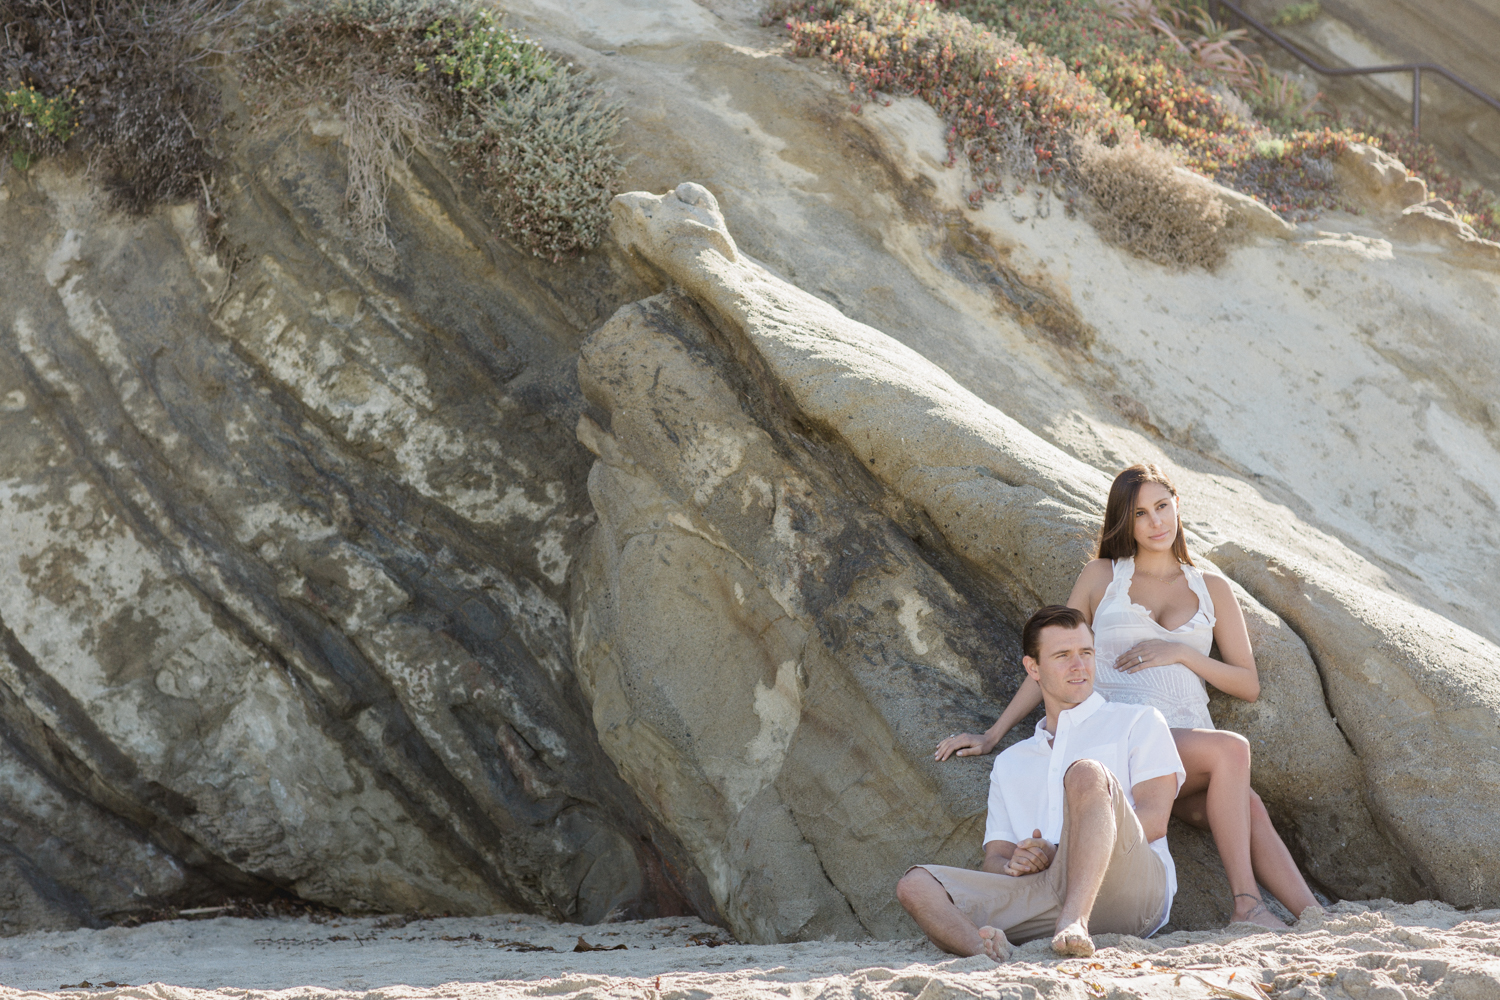 LagunaBeach_Family_MaternityShoot_SidneyKraemer_Low-55.jpg